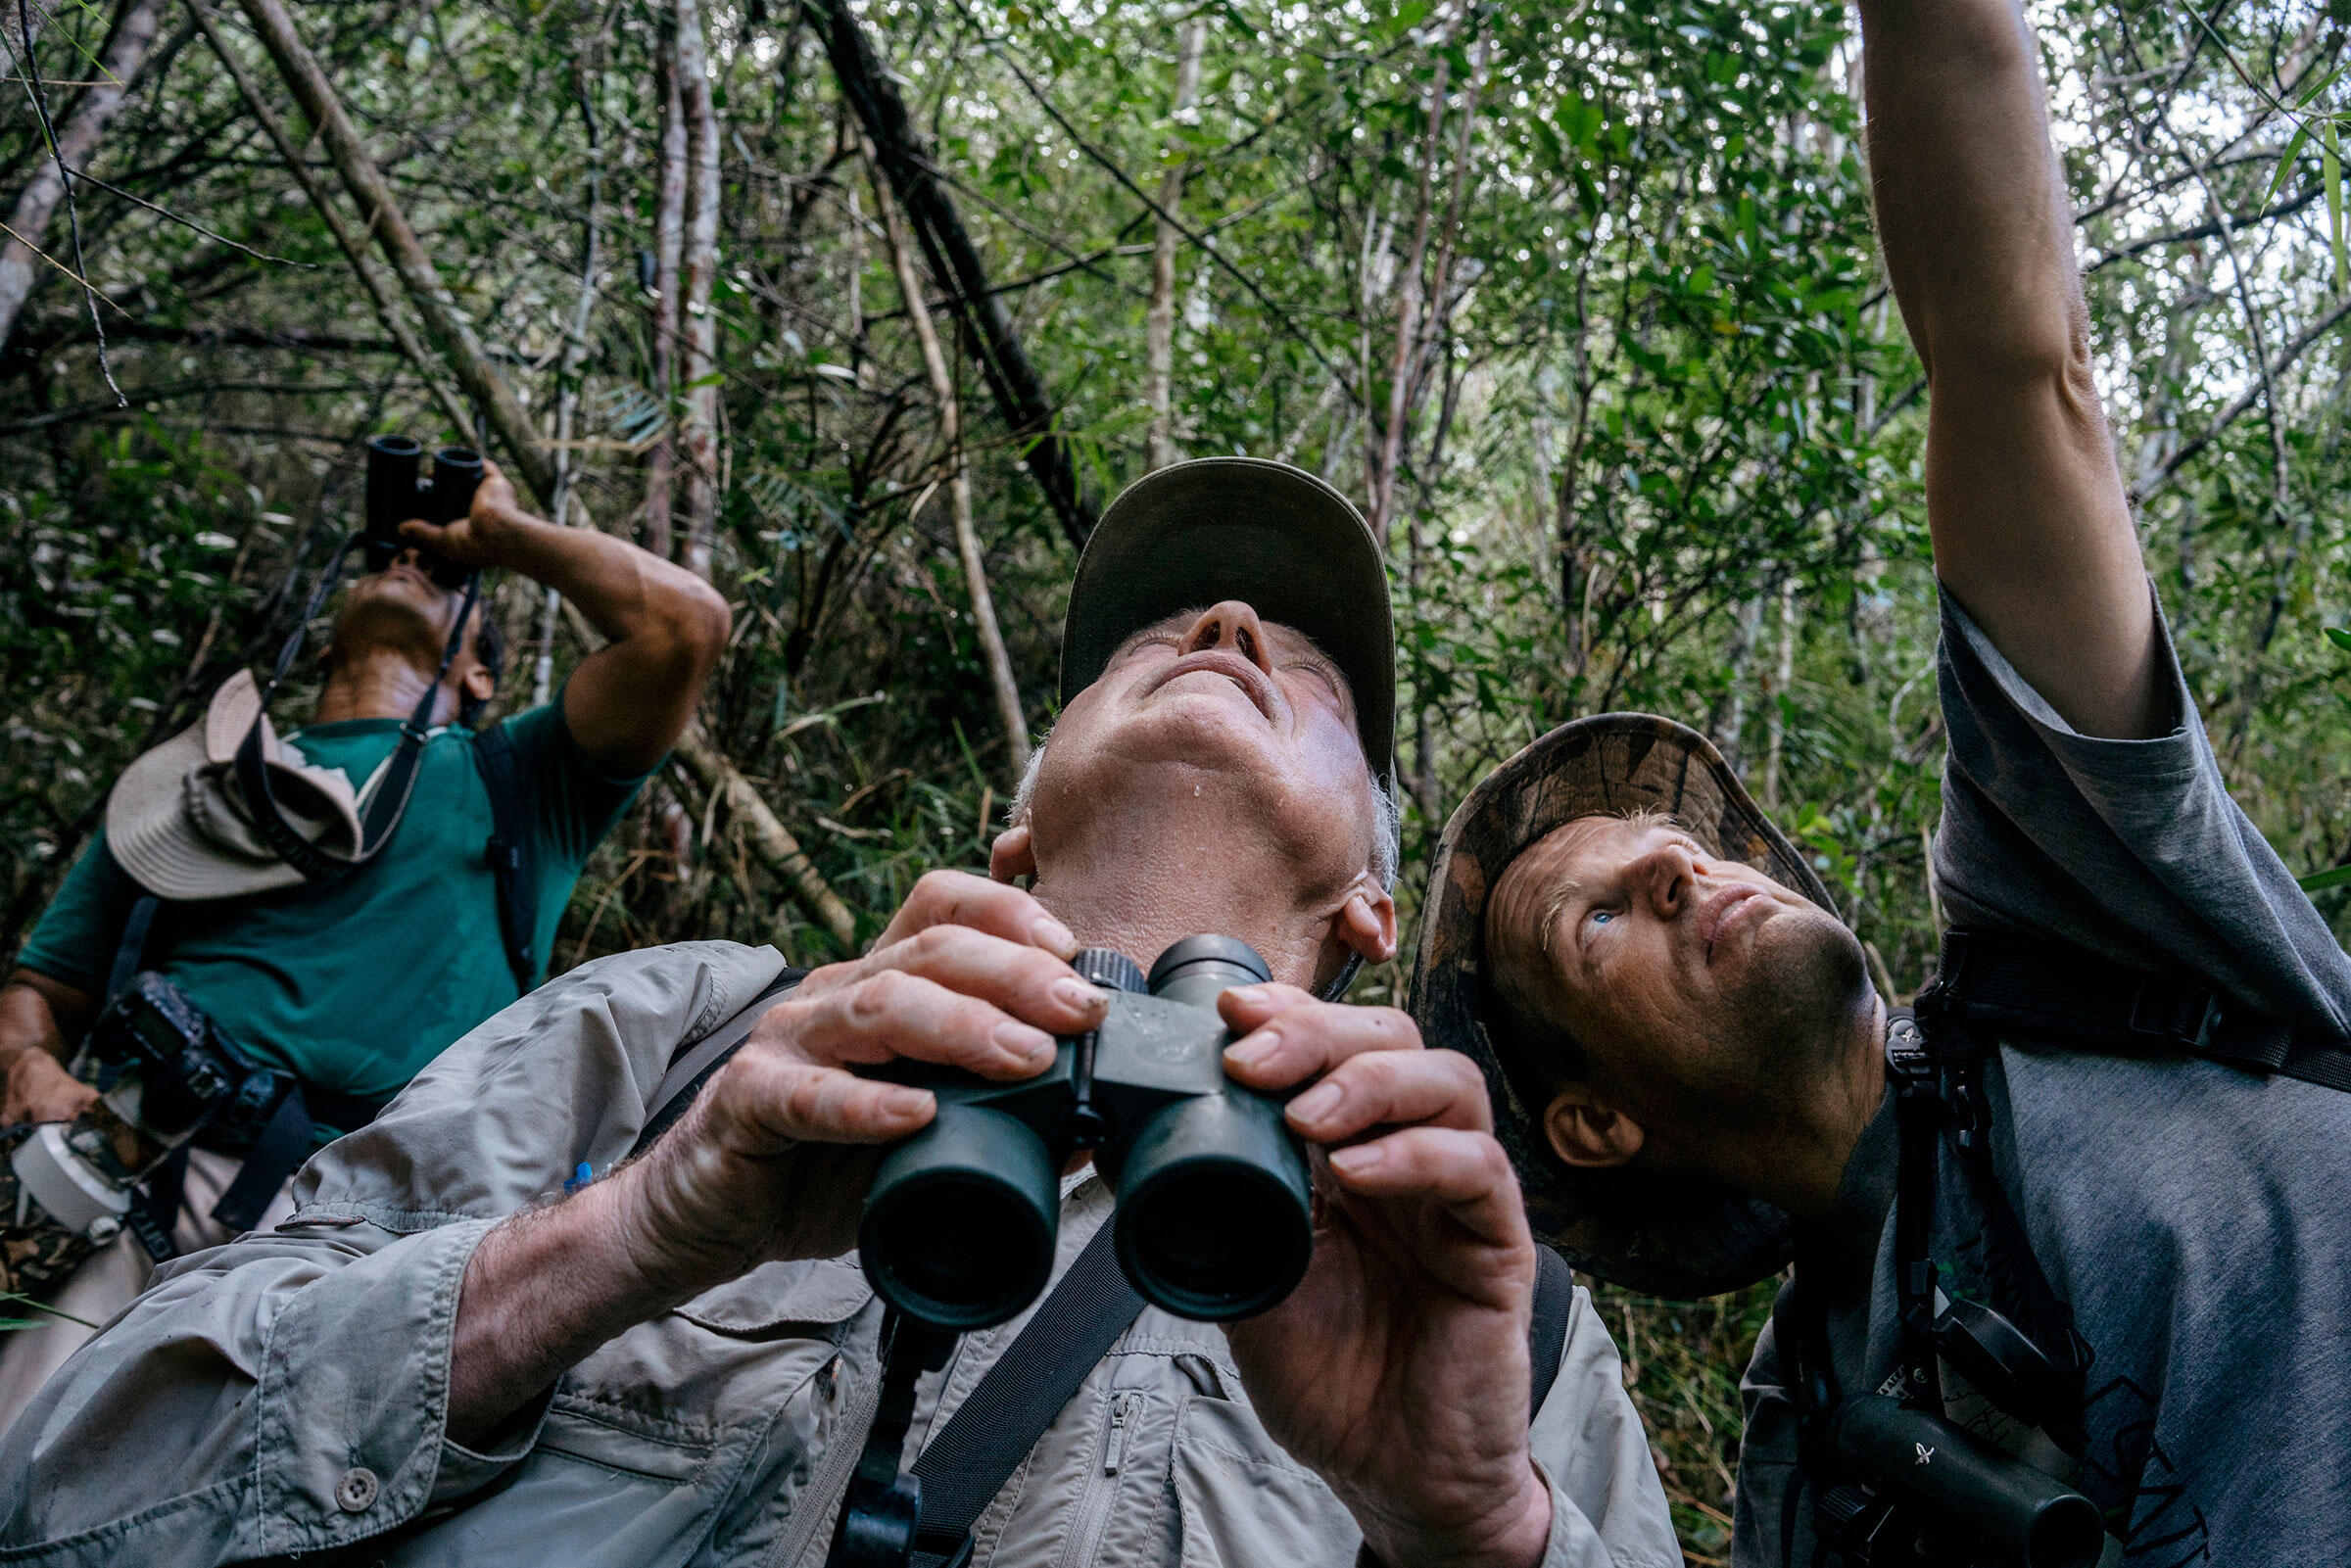 National park guide El Indio (in the back) and Gallagher and Lammertink search the treetops. Greg Kahn